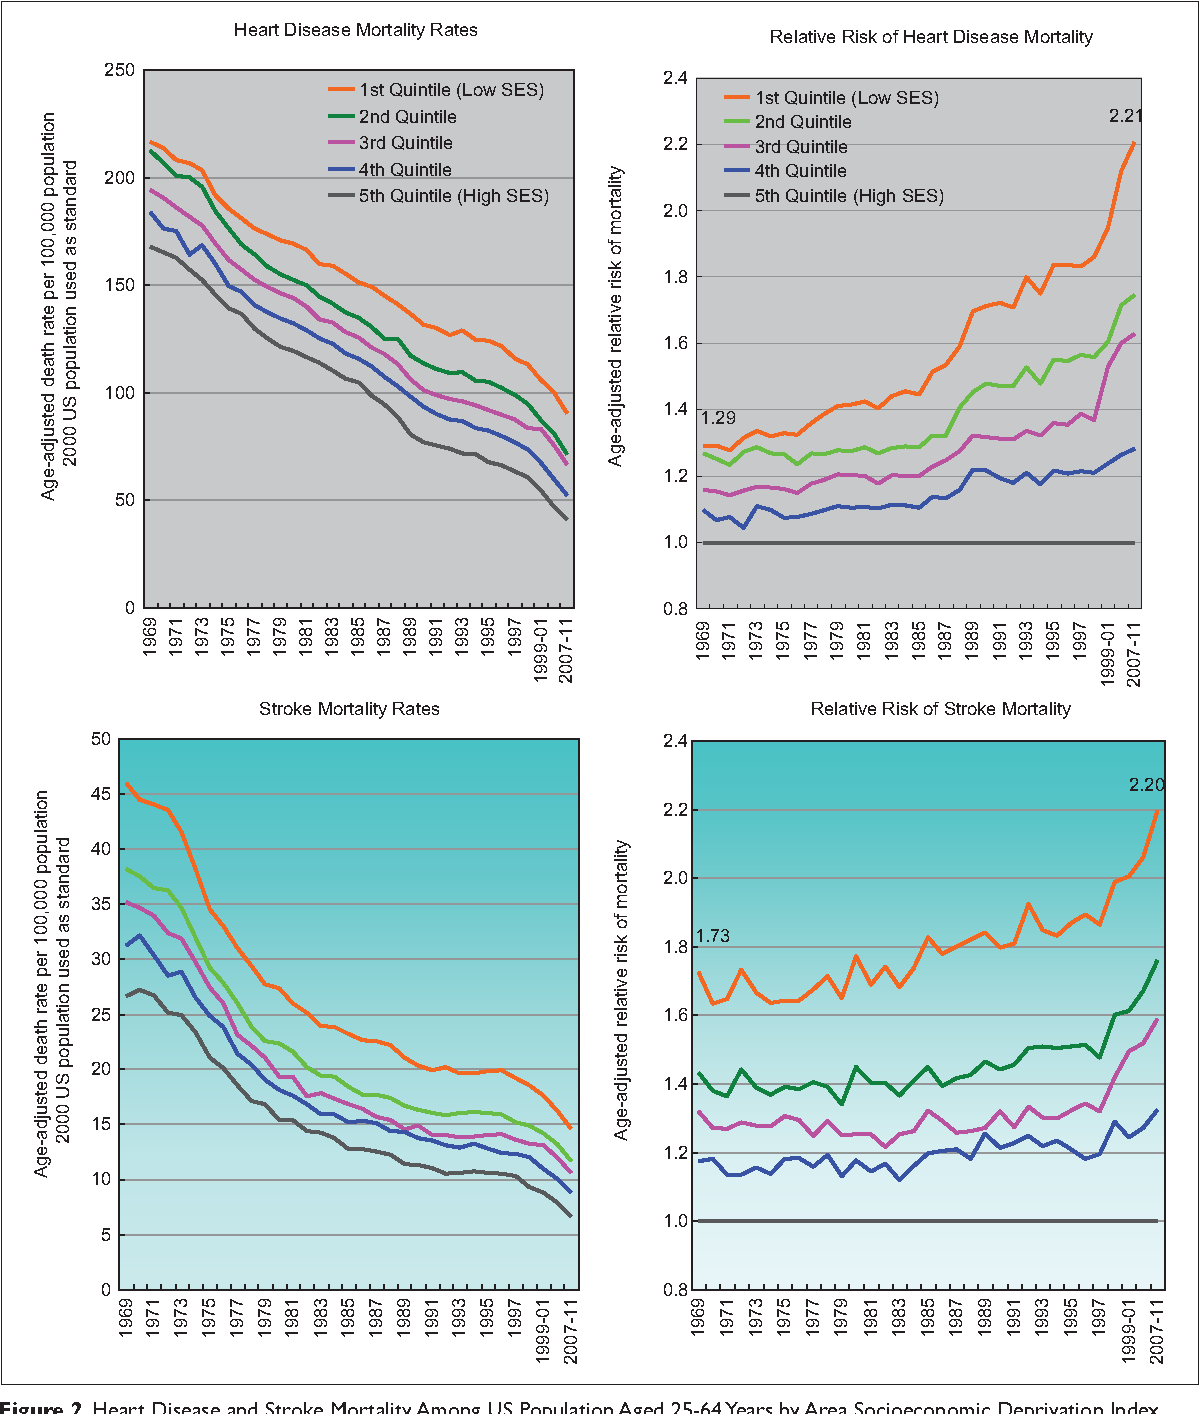 Figure 2. Heart Disease and Stroke Mortality Among US Population Aged 25-64 Years by Area Socioeconomic Deprivation Index, 1969-2011